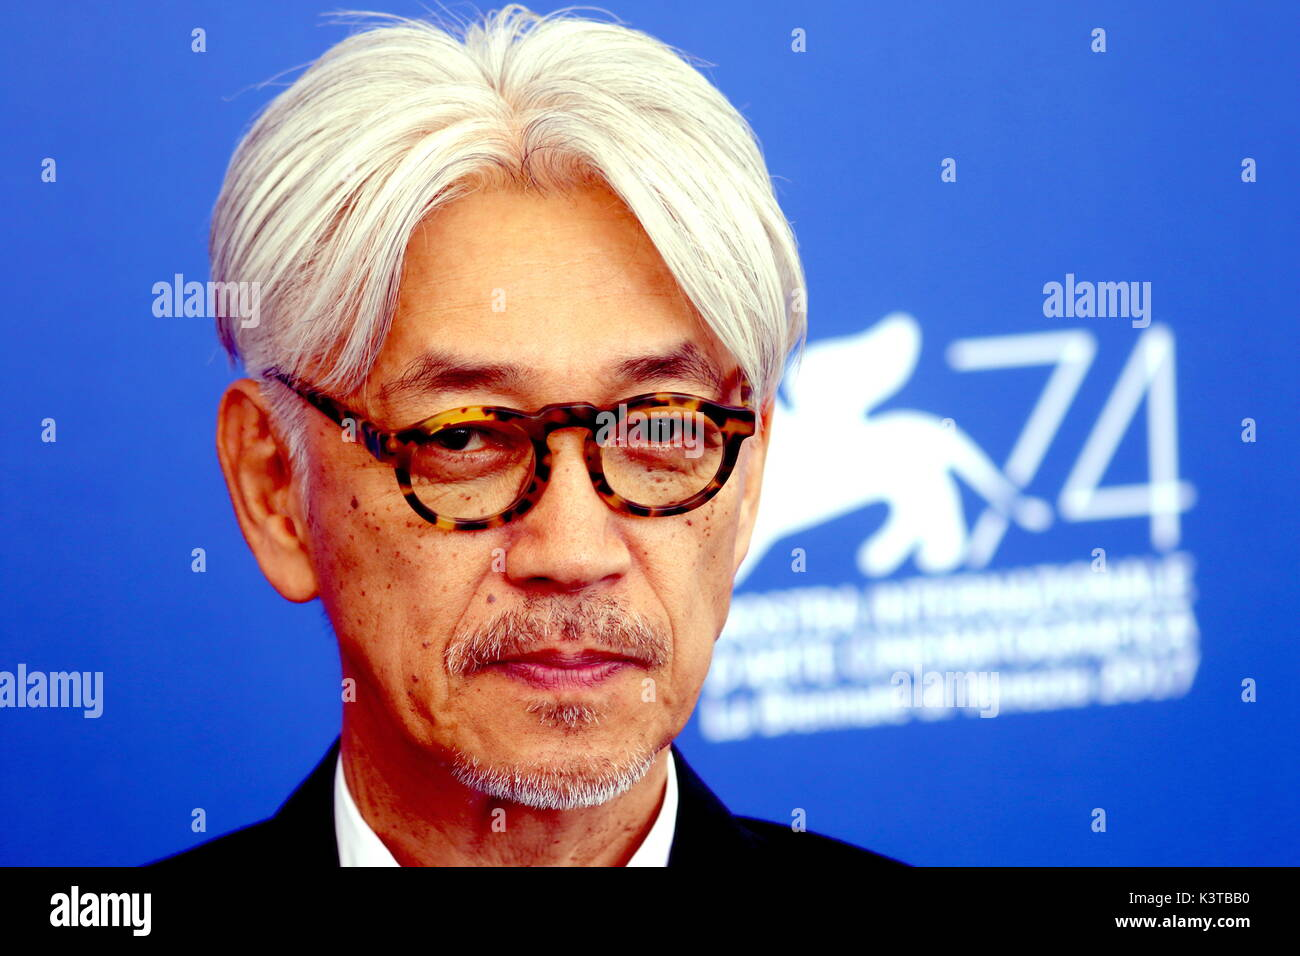 Venice, Italy. 3rd Sep, 2017.Japanese musician Ryuichi Sakamoto attends the photocall of the movie 'Ryuichi Sakamoto : Coda' during the 74th Venice International Film Festival at Lido of Venice on 3th September, 2017. Credit: Andrea Spinelli/Alamy Live News - Stock Image